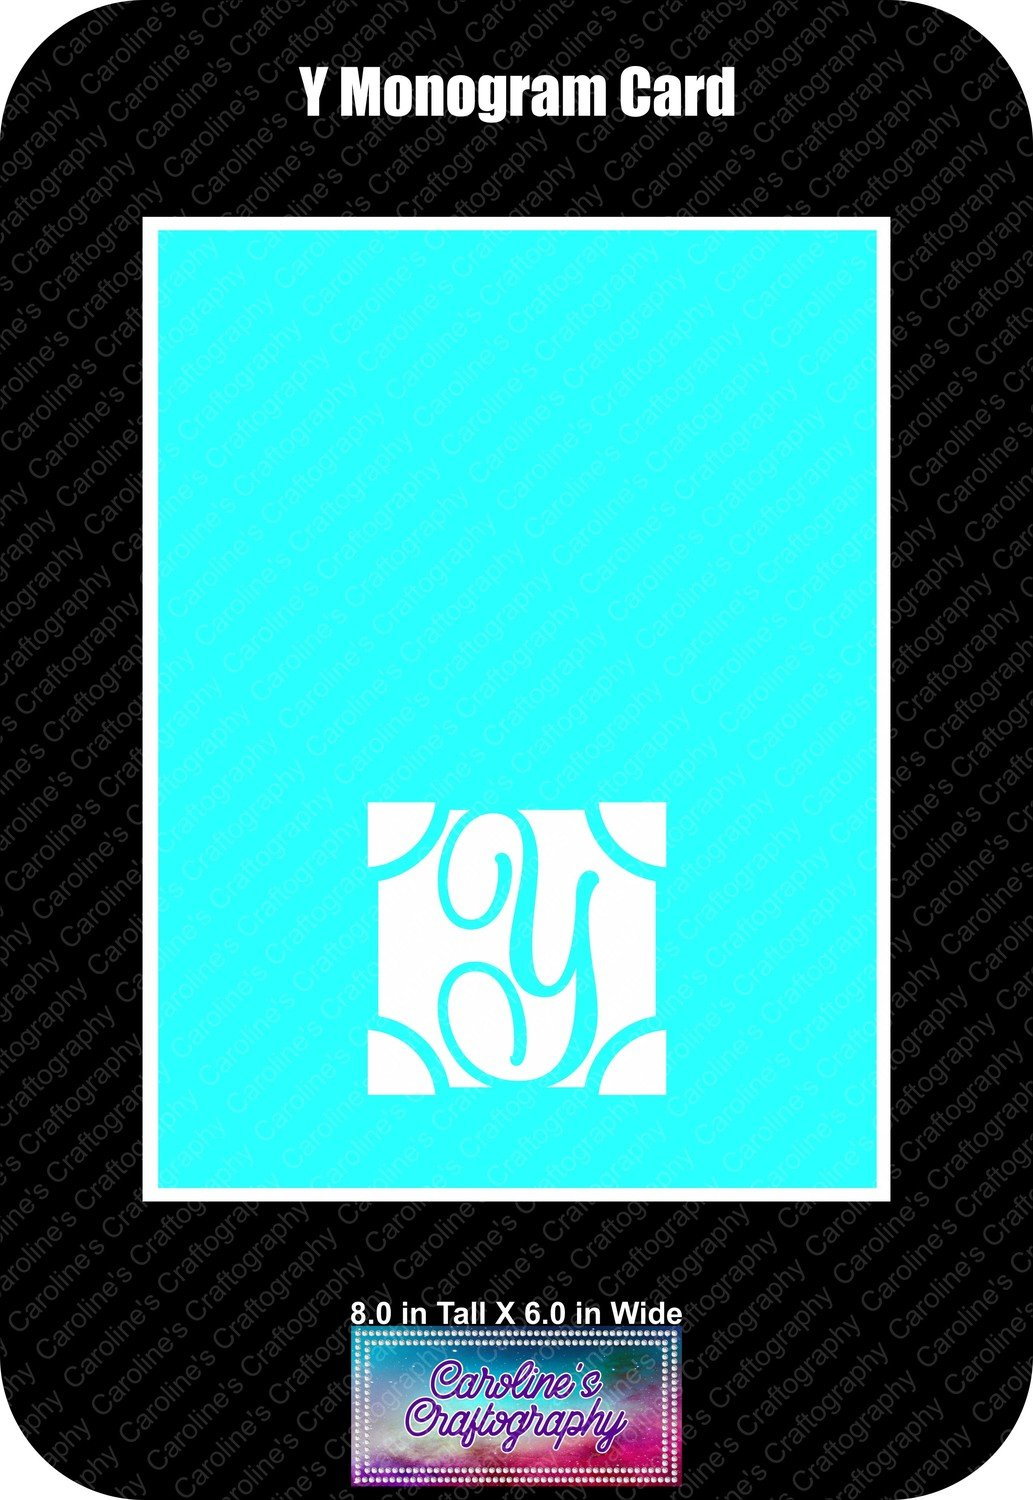 Y Monogram Card Base